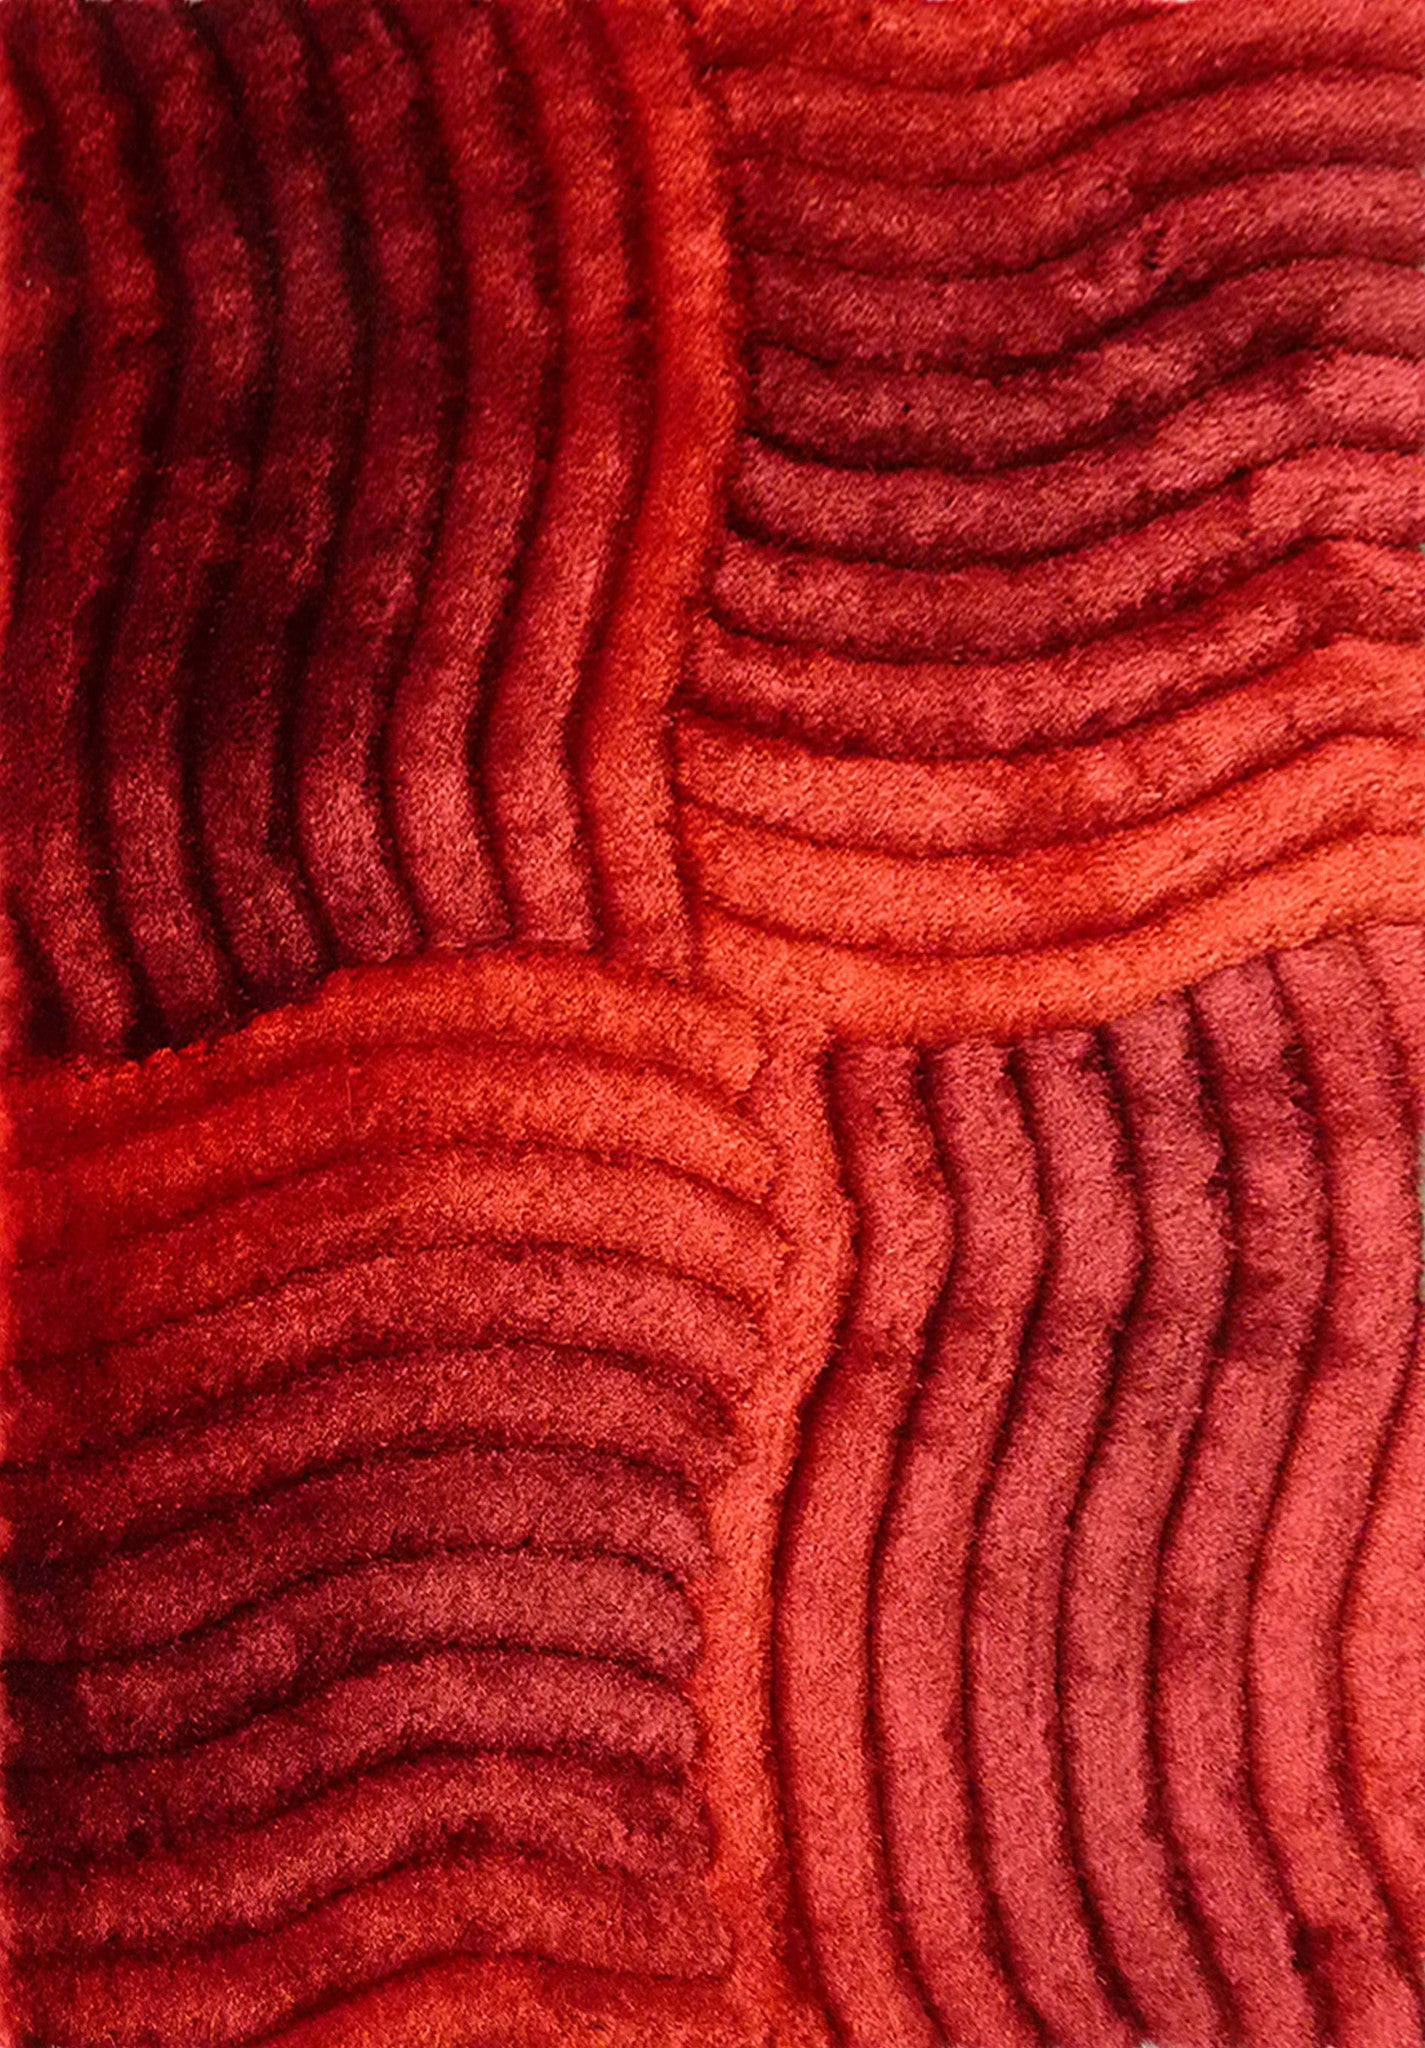 3 Dimensional Hand Tufted Red Shag Area Rug With Hand